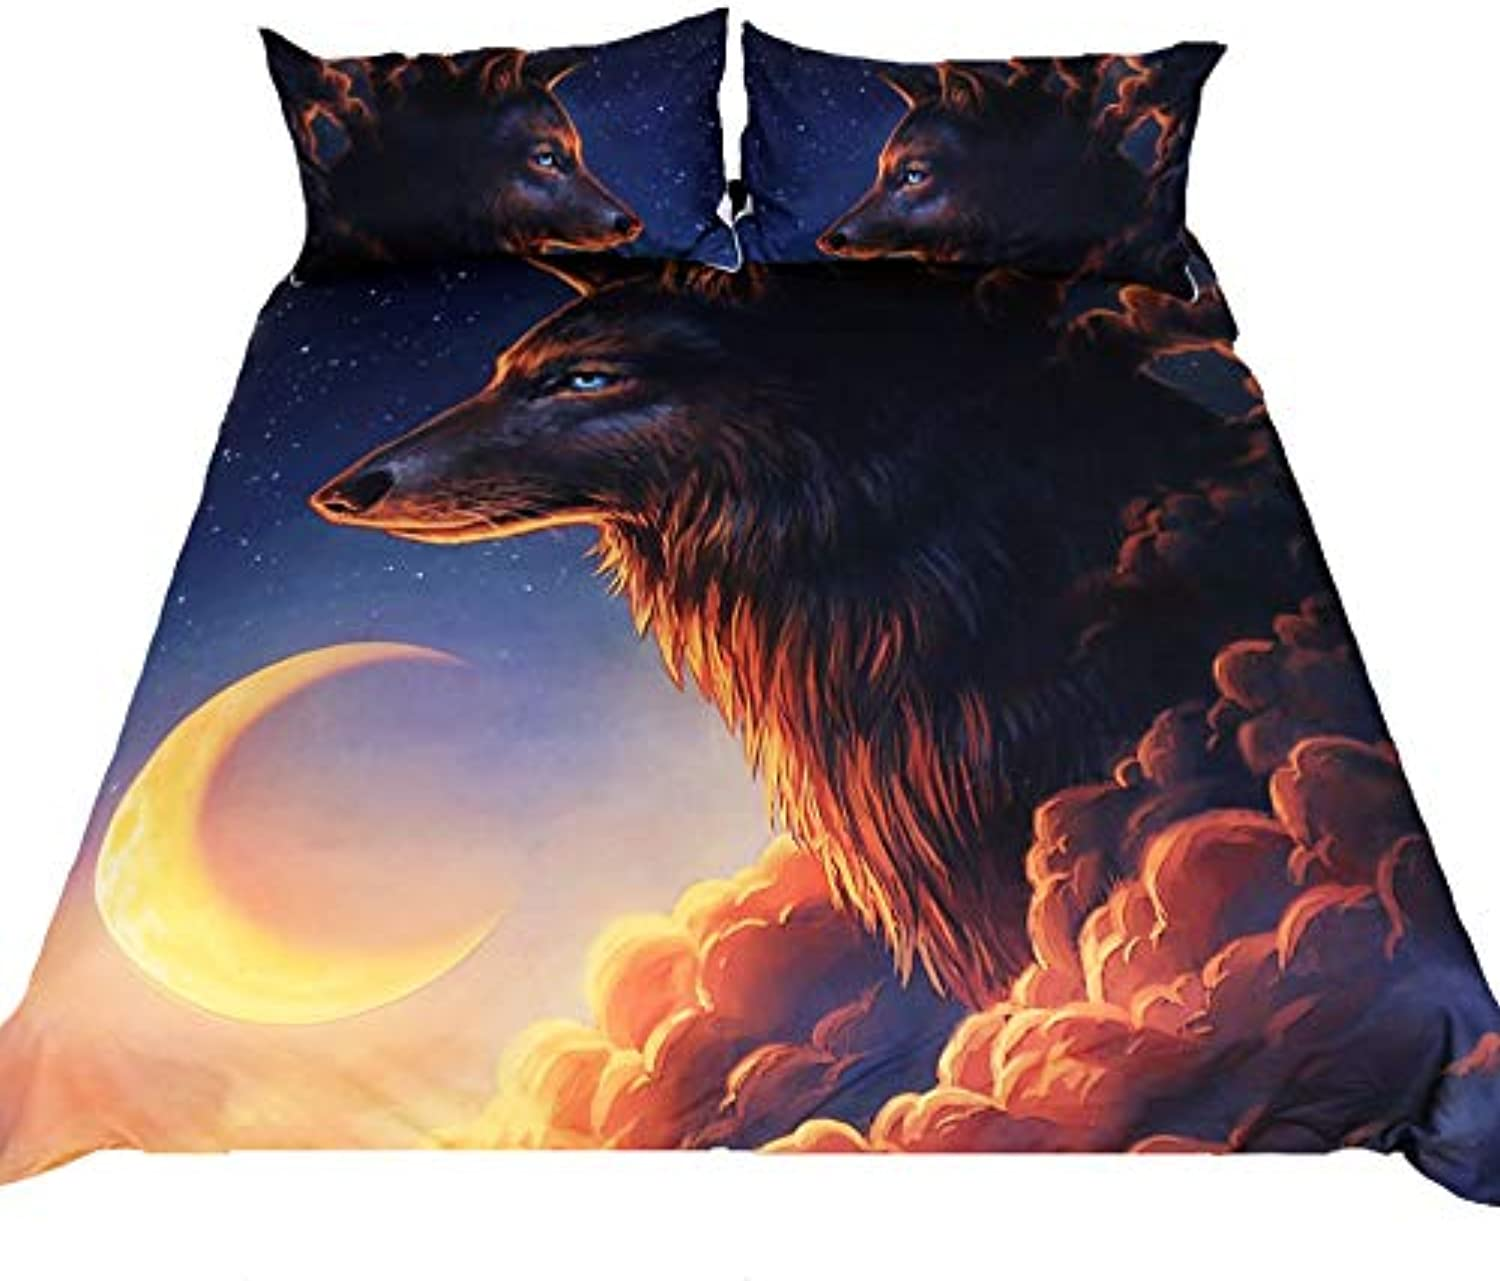 Night Guardian by JoJoesArt 3PC Bedding Sheet Sets,Wolf And The New Moon Duvet Cover Set .Included 1Duvet Cover,2Pillowcase(no Comforter inside) (Queen)